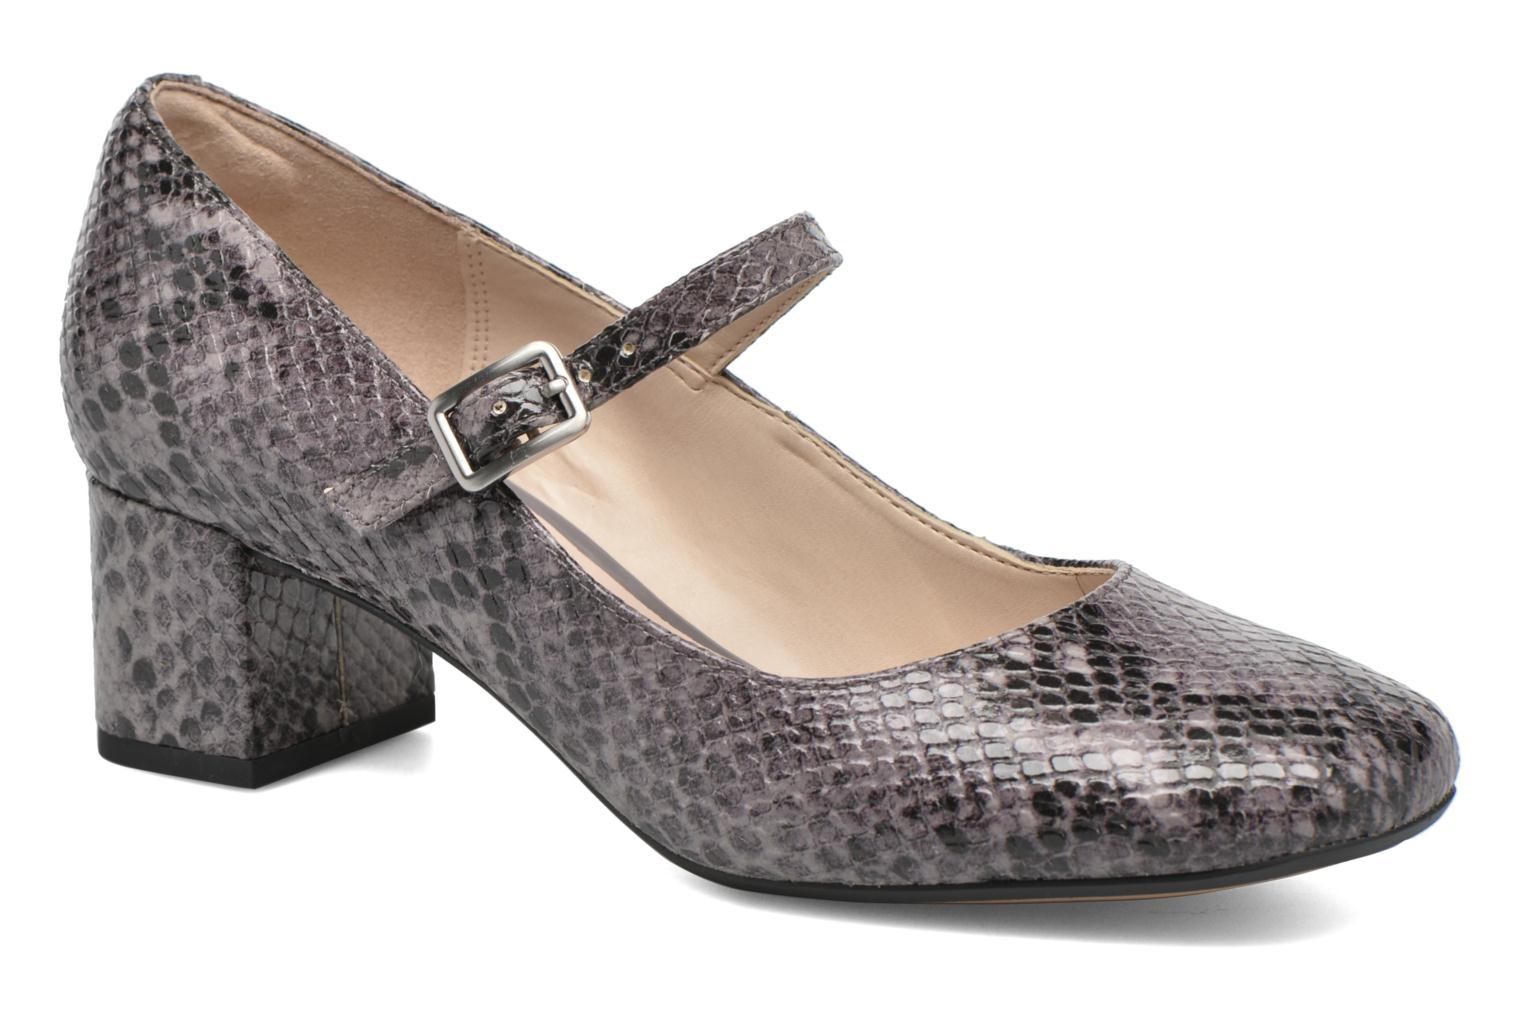 Clarks Chinaberry Pop Femme Escarpins Greyblue Chaussures